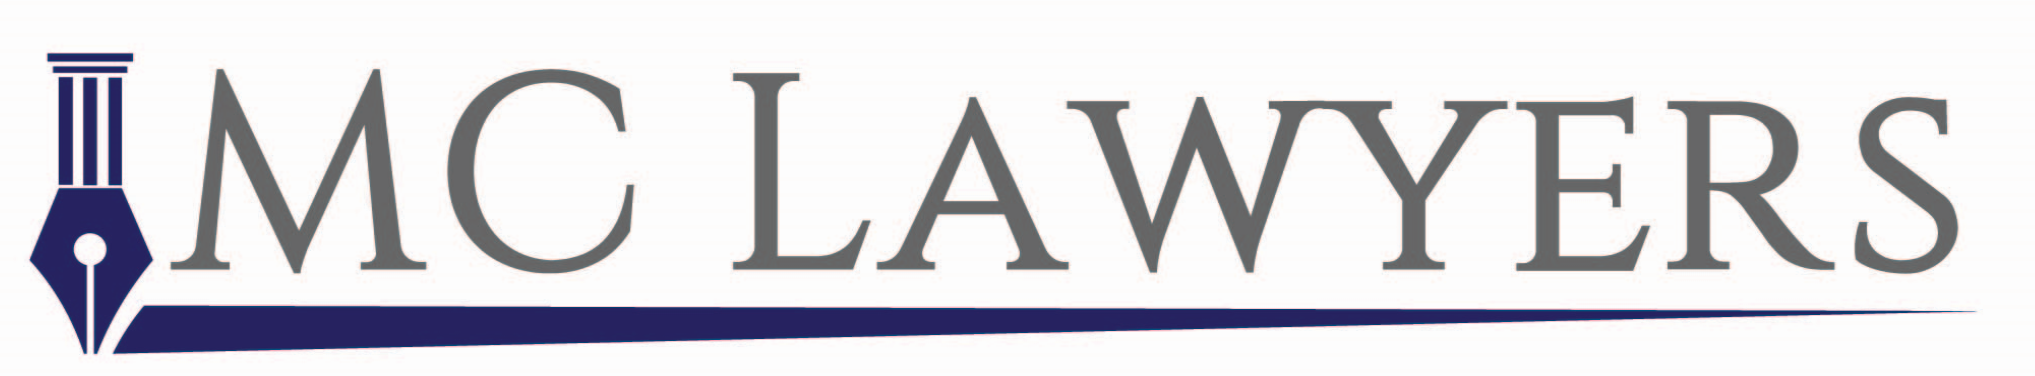 MC Lawyers & Advisers. Sydney Lawyers. Sydney Commercial Lawyers